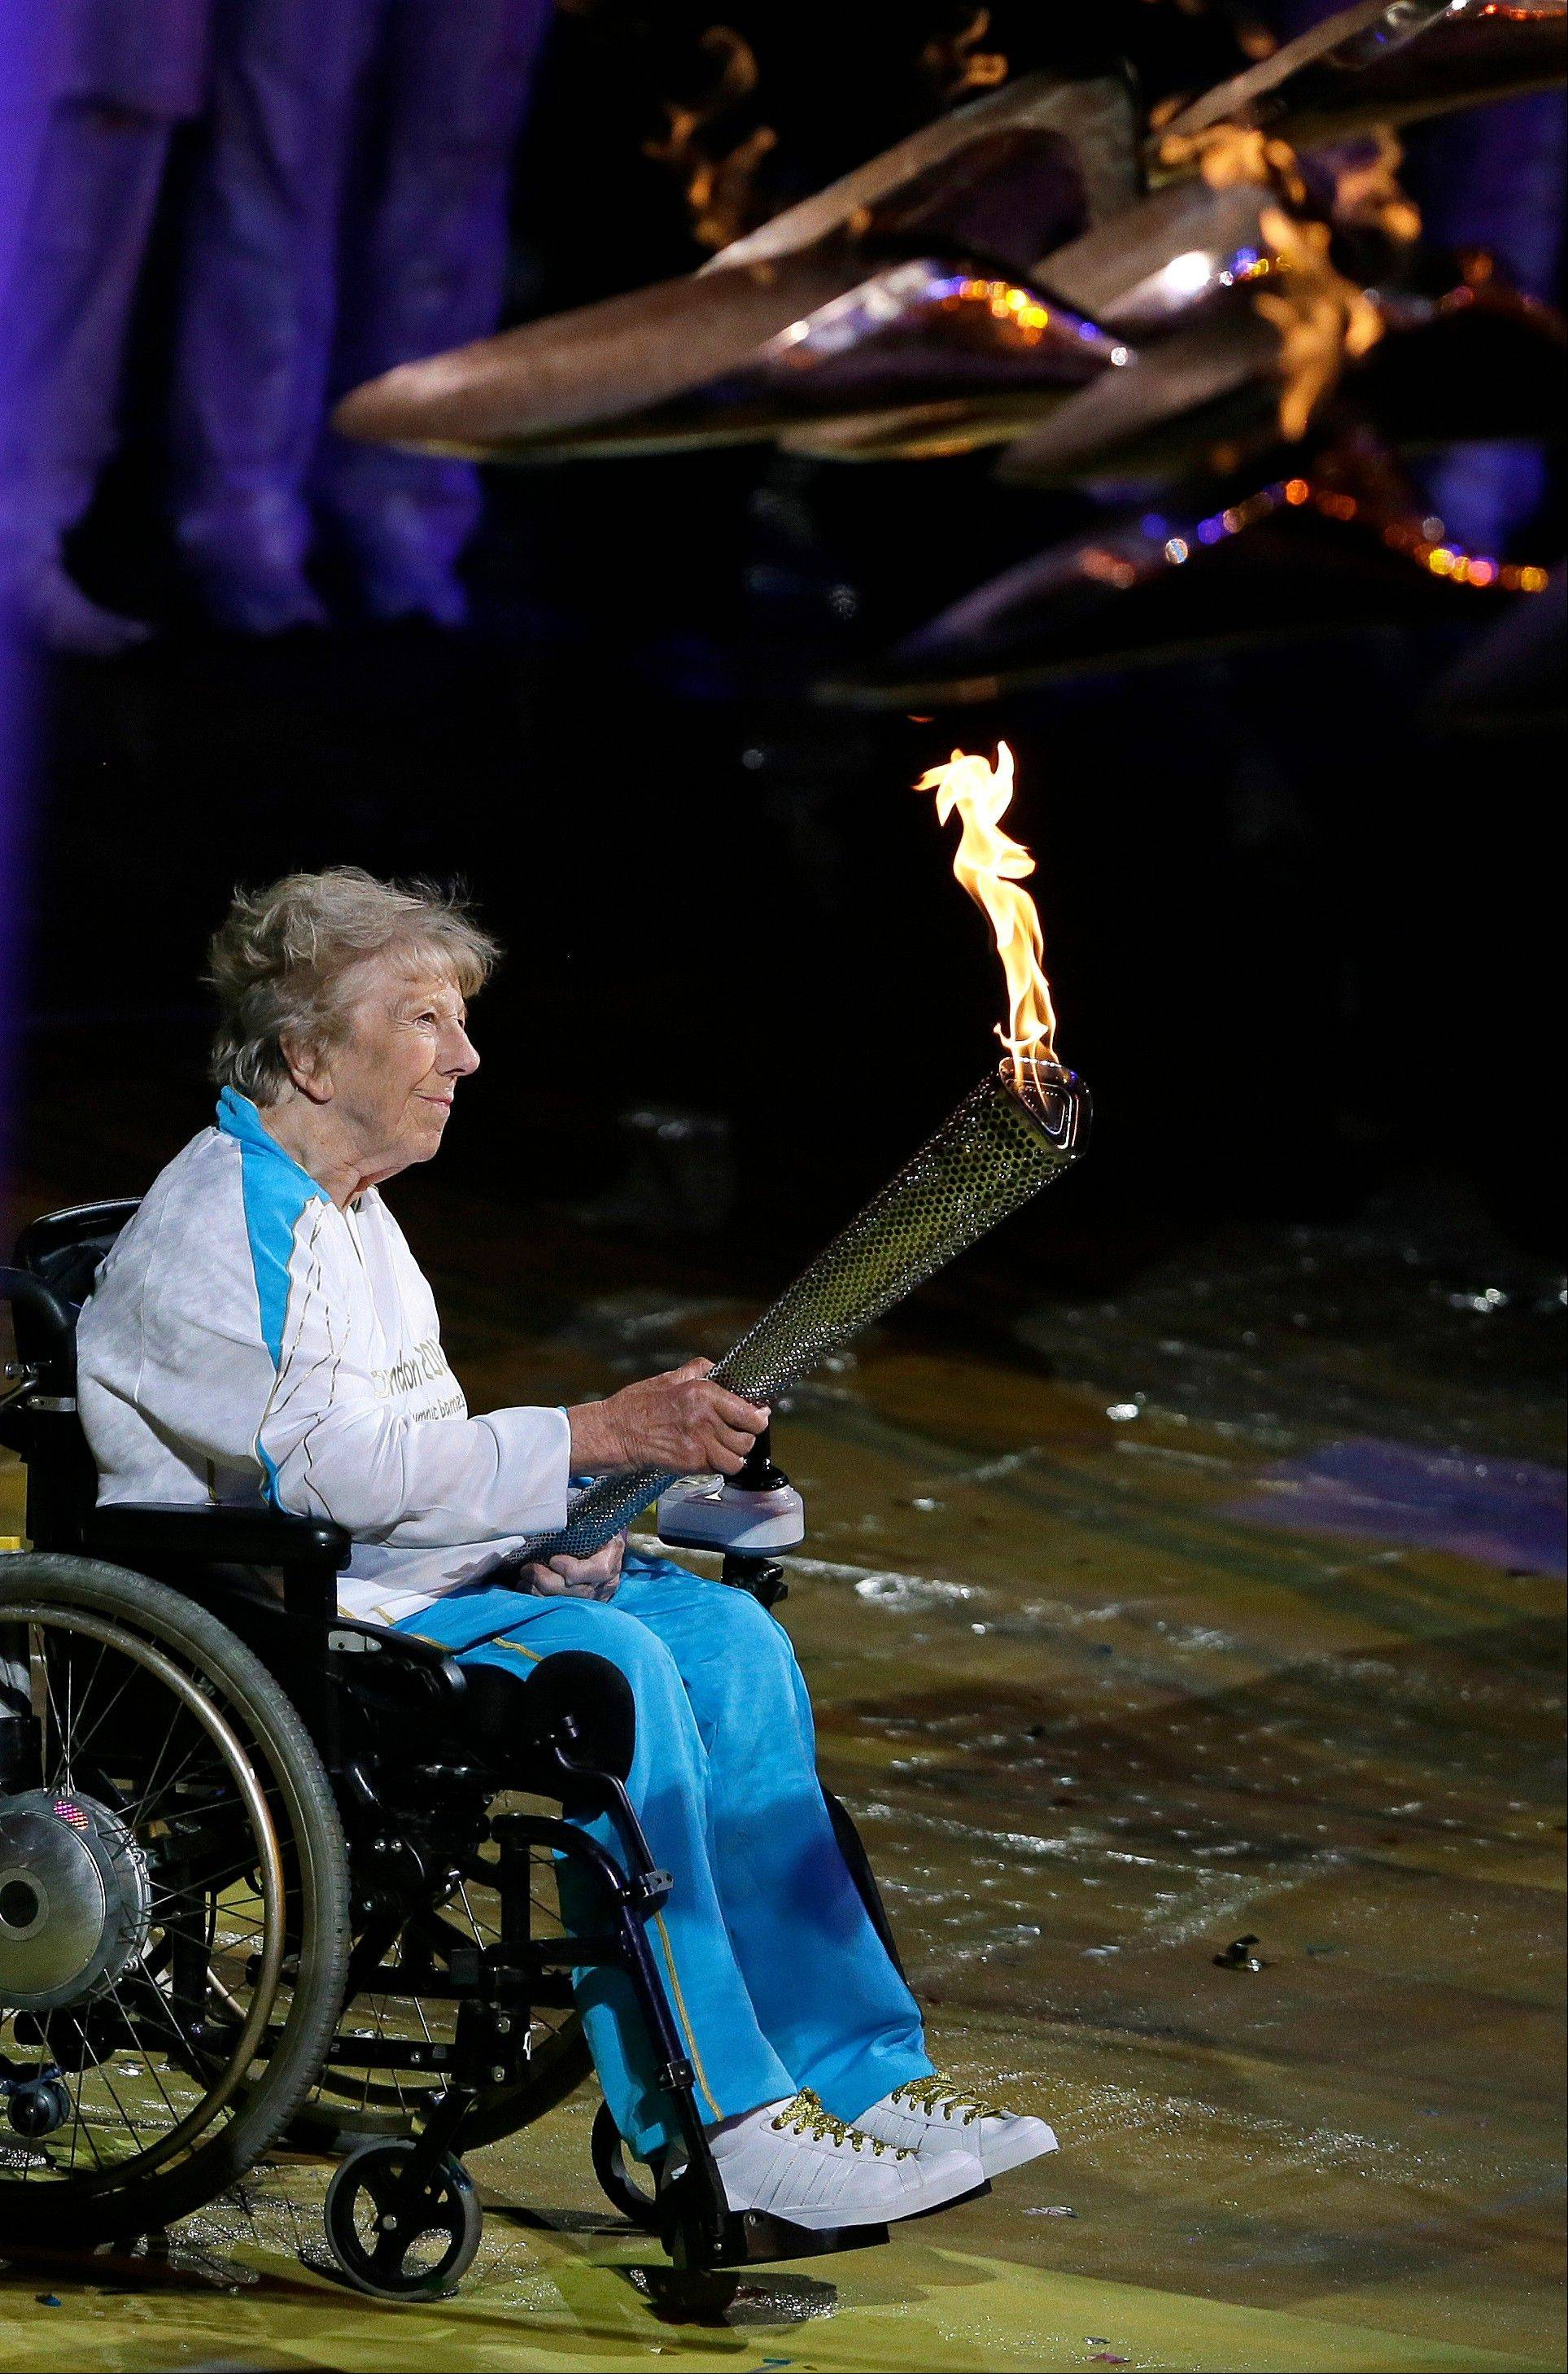 Margaret Maughan, Britain�s first Paralympic gold medalist, lights the Paralympic flame during the Opening Ceremony for the 2012 Paralympics in London, Wednesday Aug. 29, 2012.